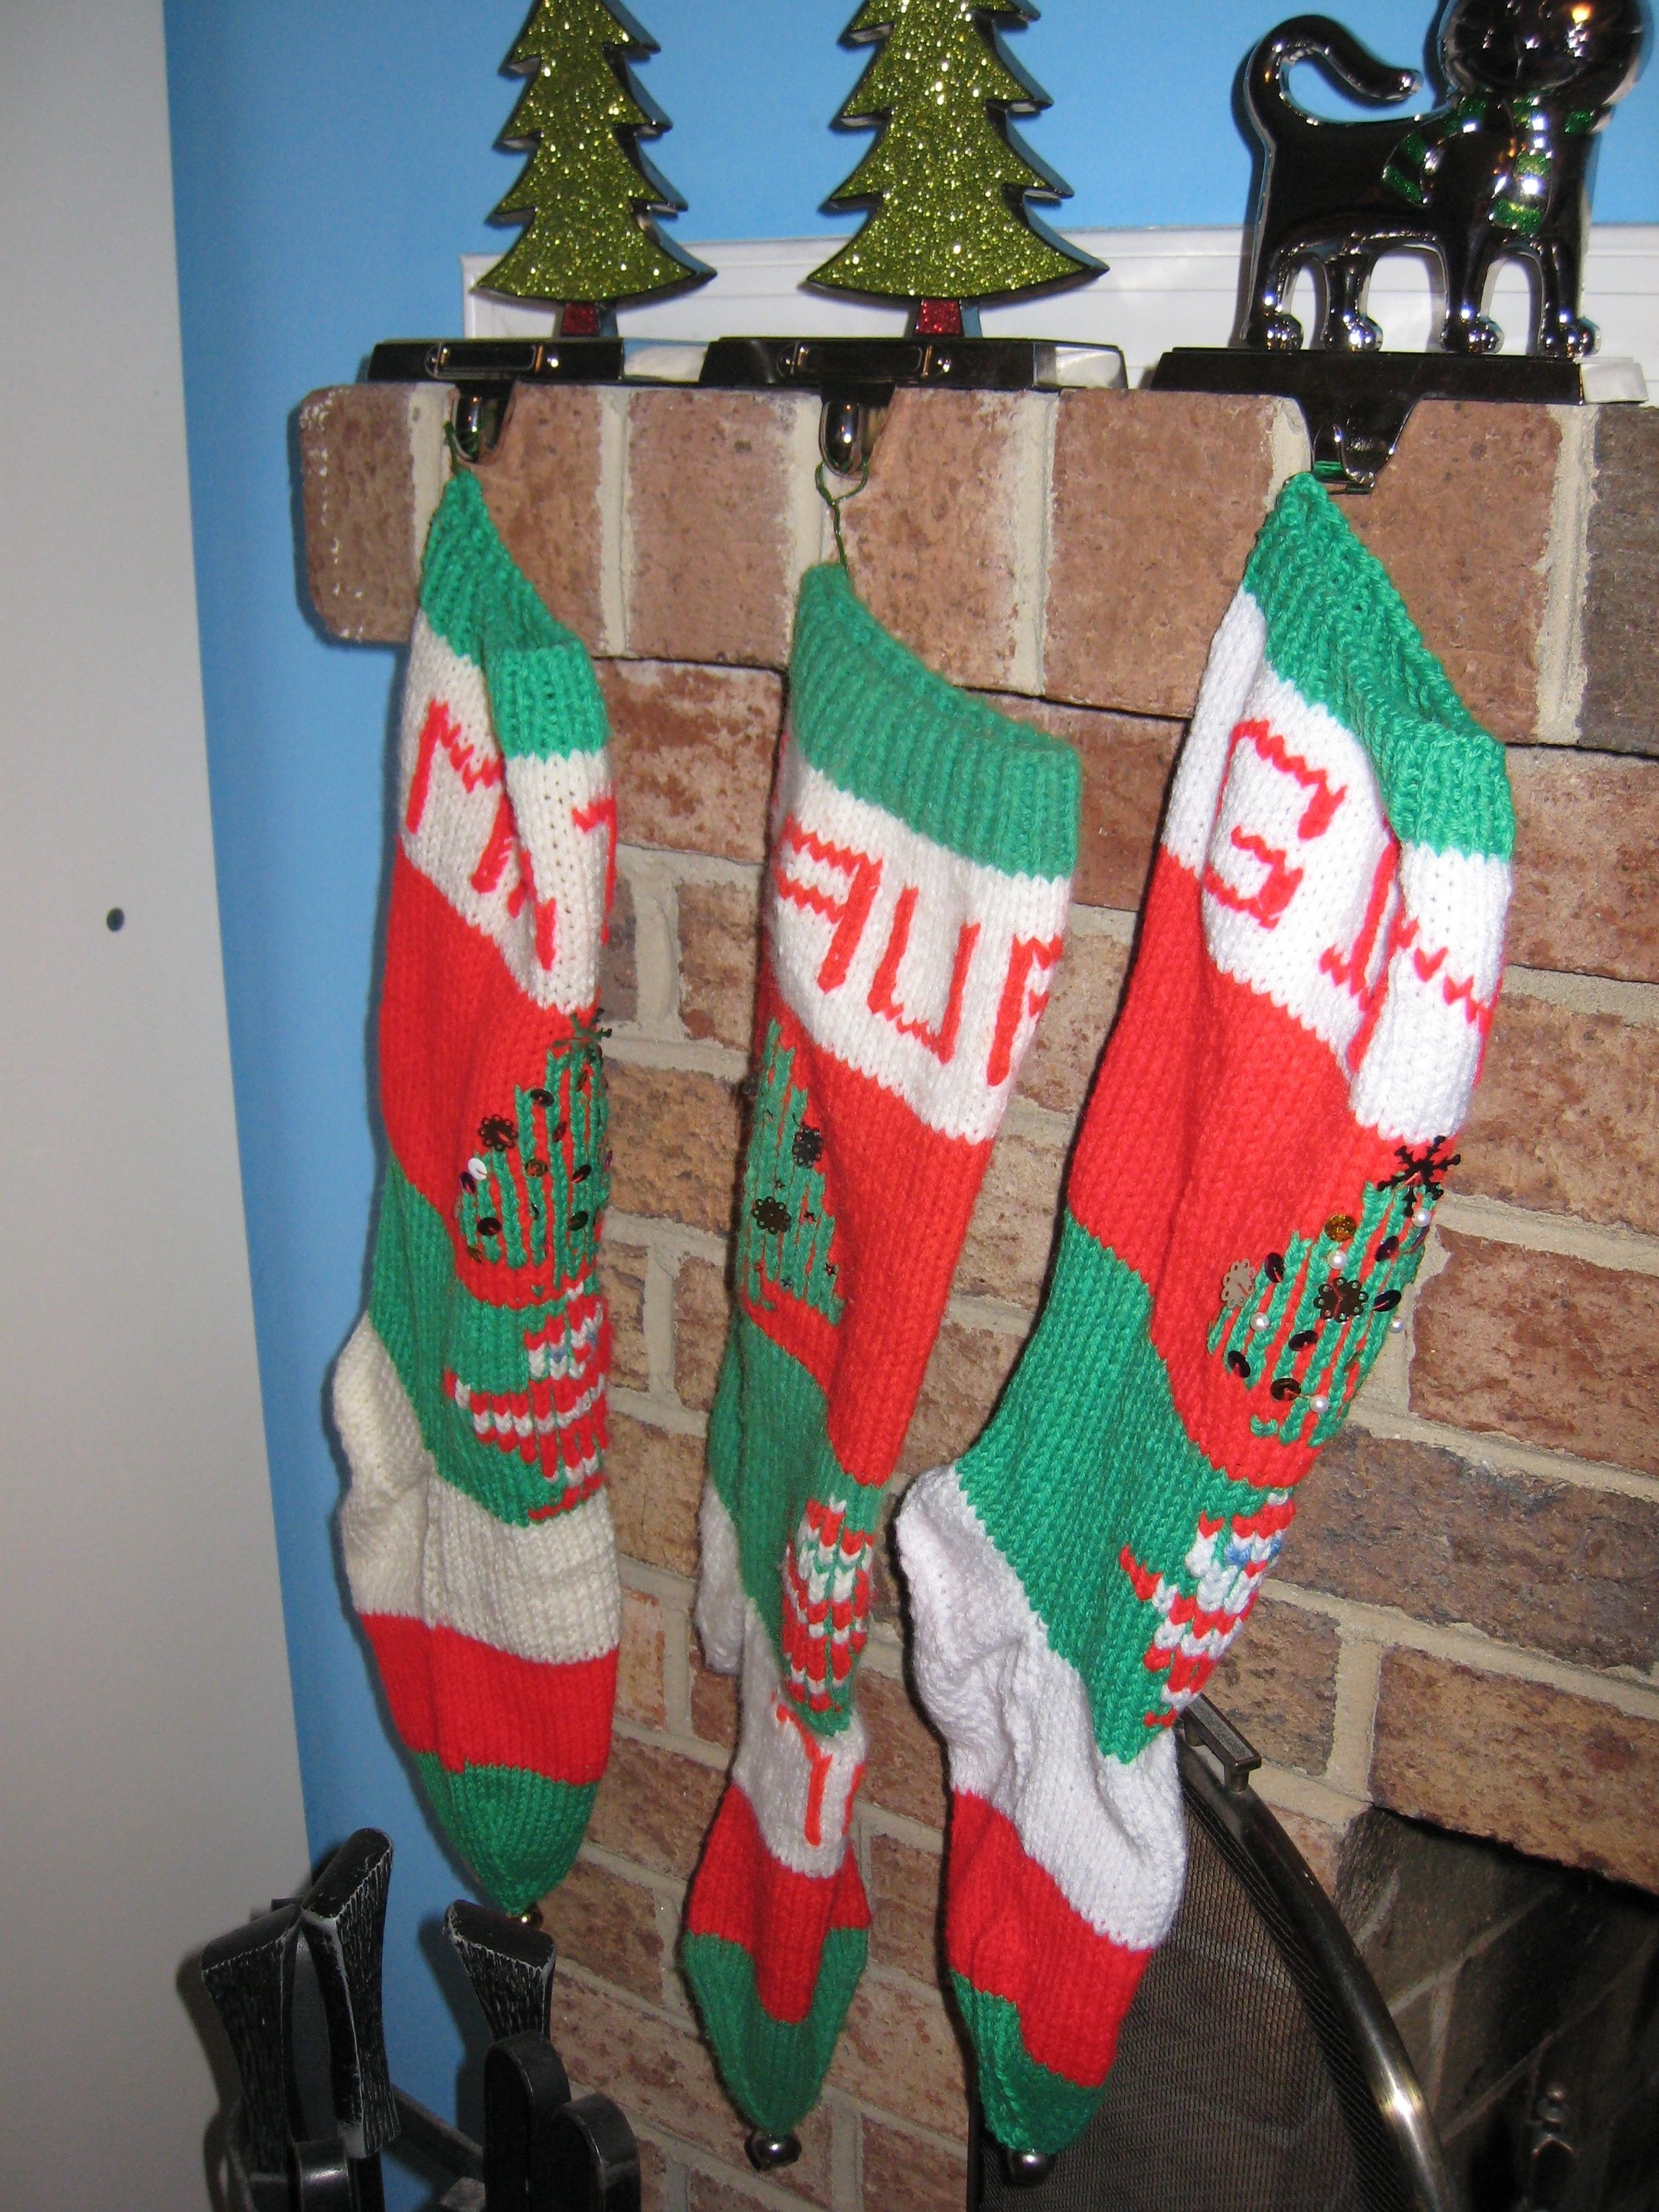 Knit Christmas Stocking Patterns | AllFreeChristmasCrafts.com